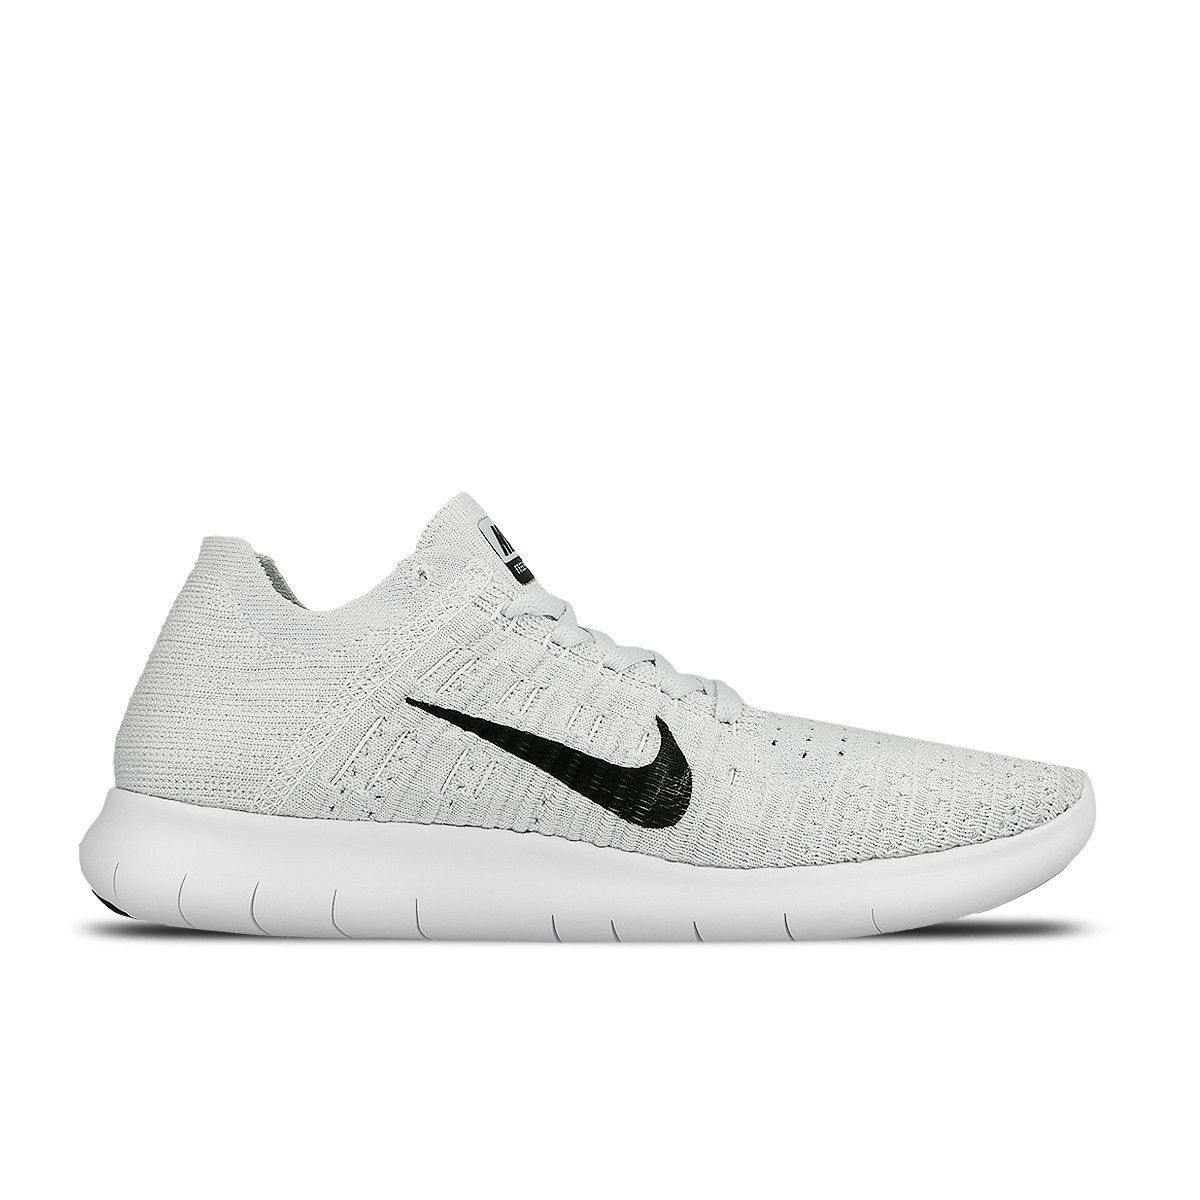 Nike Free Rn Flyknit 831070-101 Women's White Pure Platinum Running Very Rare Comfortable and good-looking